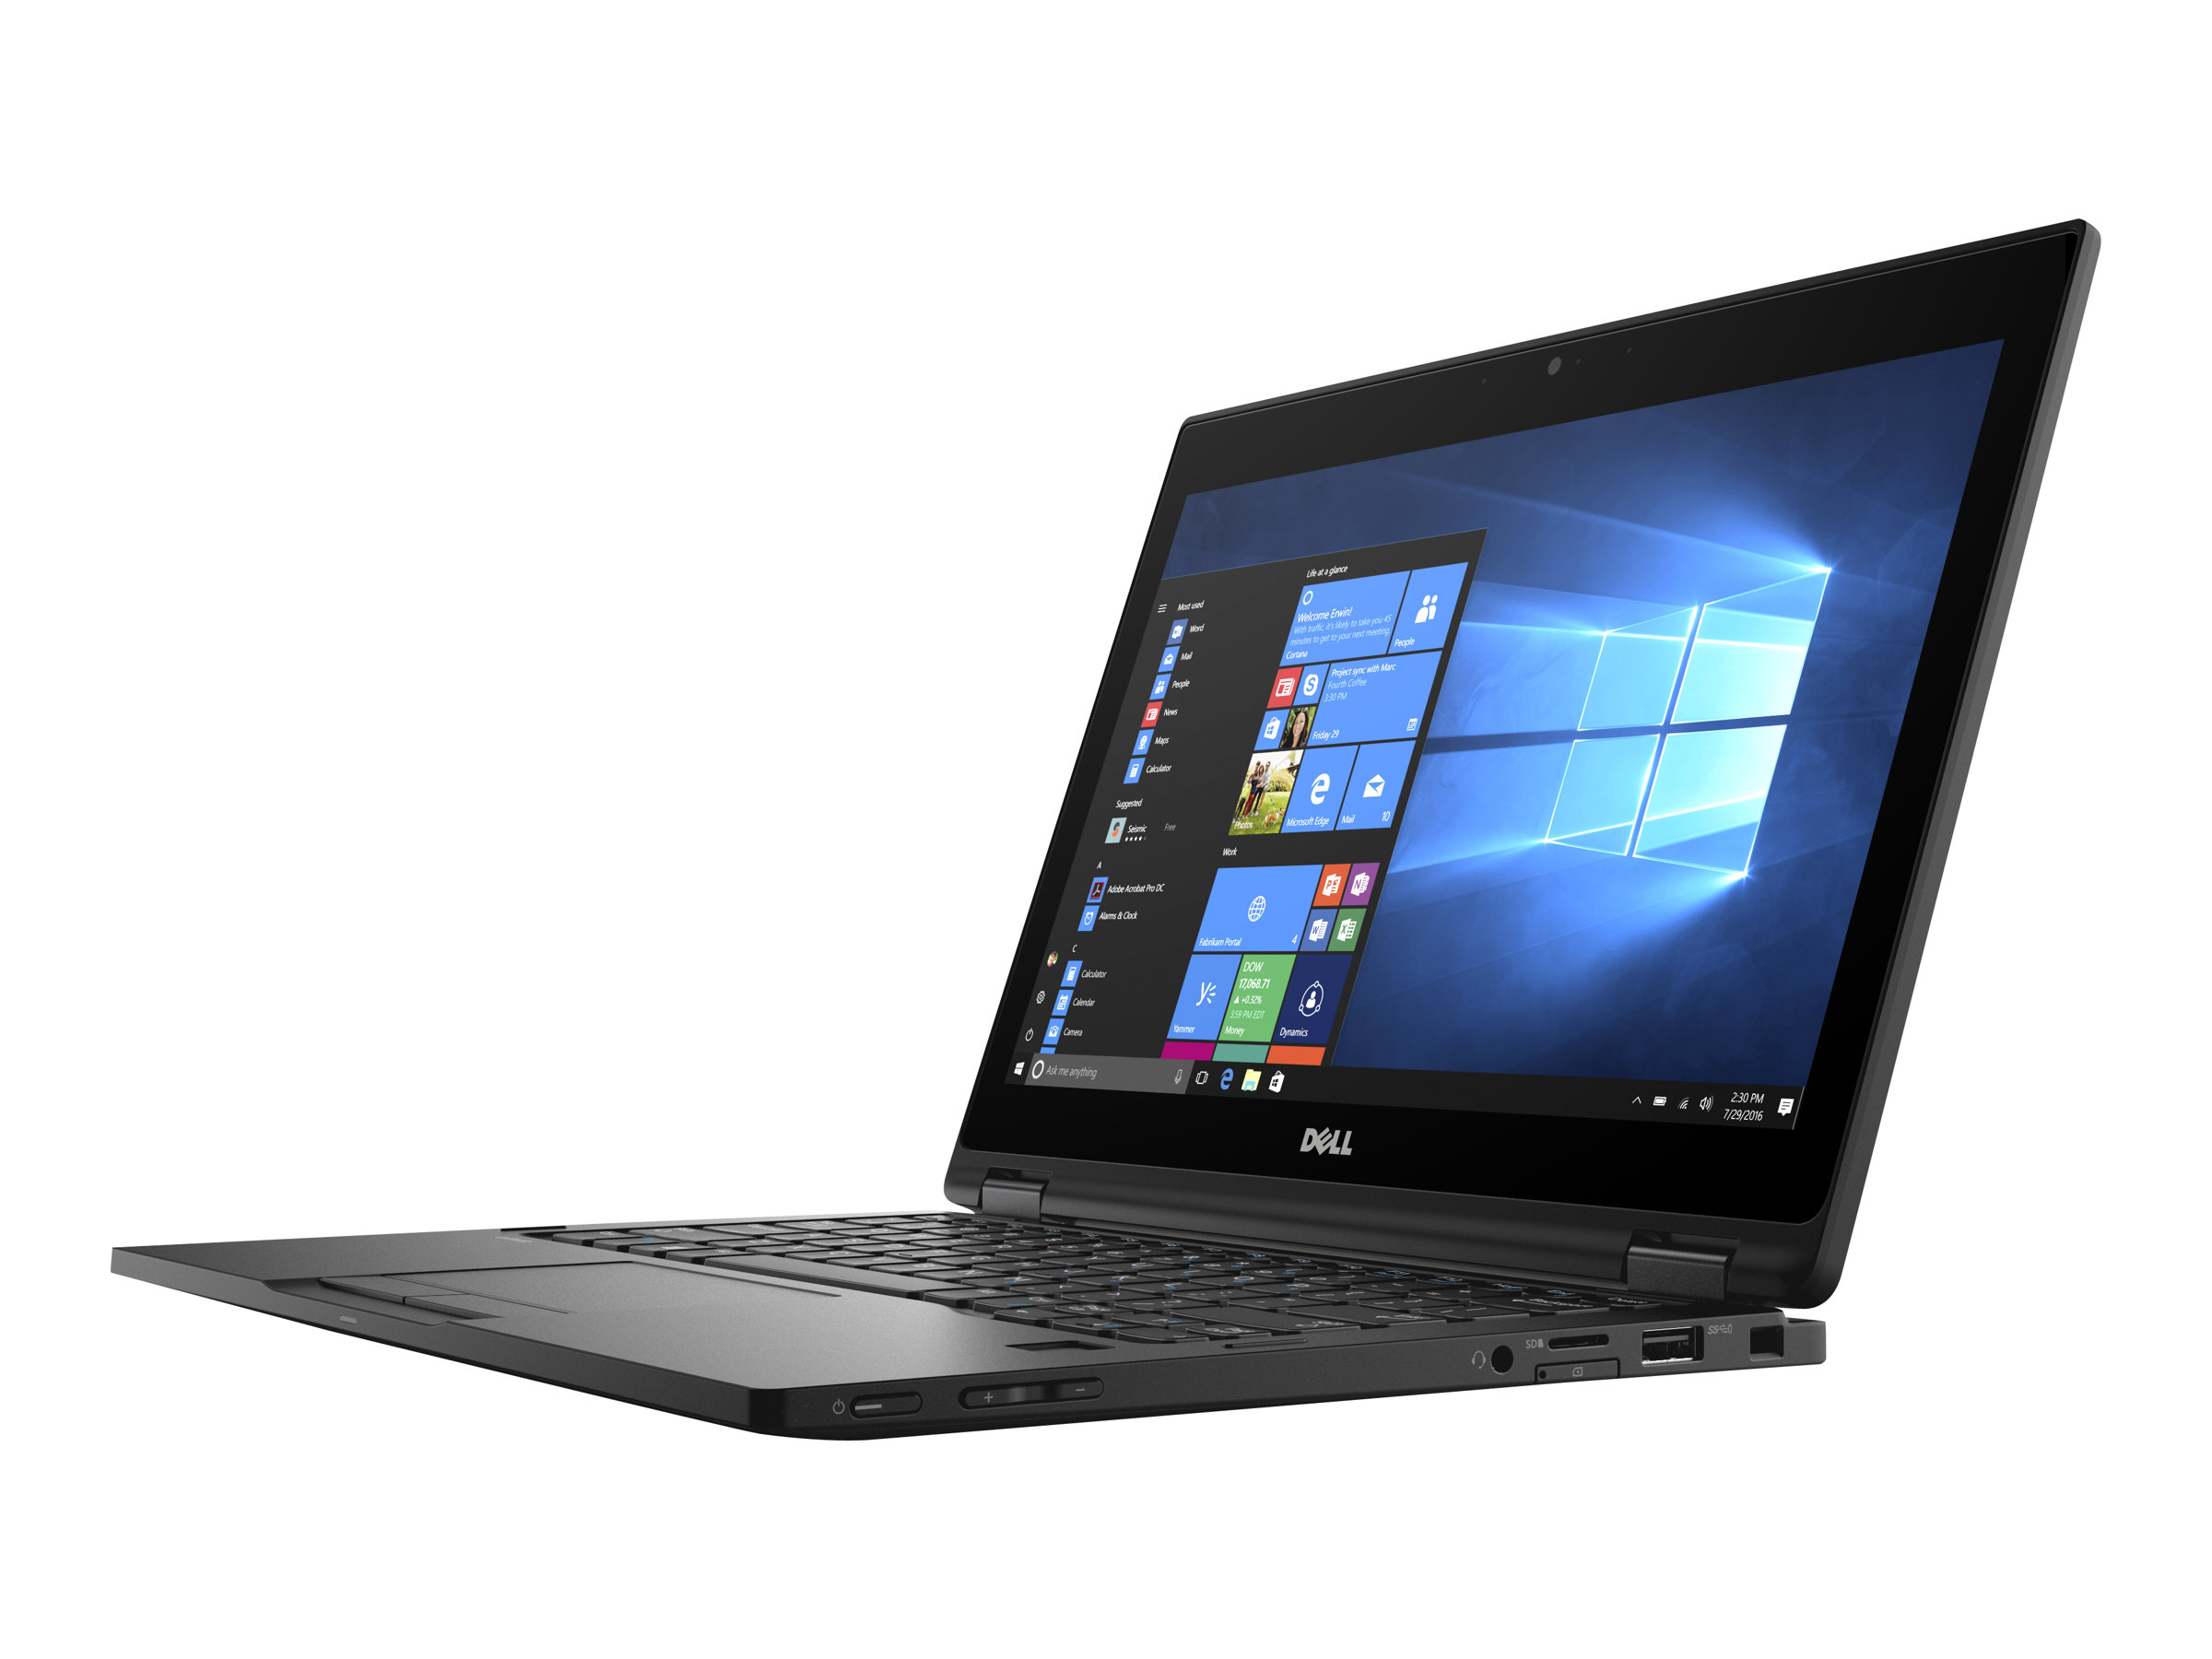 Dell Latitude 12 5289 2 In 1 - Flip-Design - Core i5 7200U / 2.5 GHz - Win 10 Pro 64-Bit - 8 GB RAM - 256 GB SSD